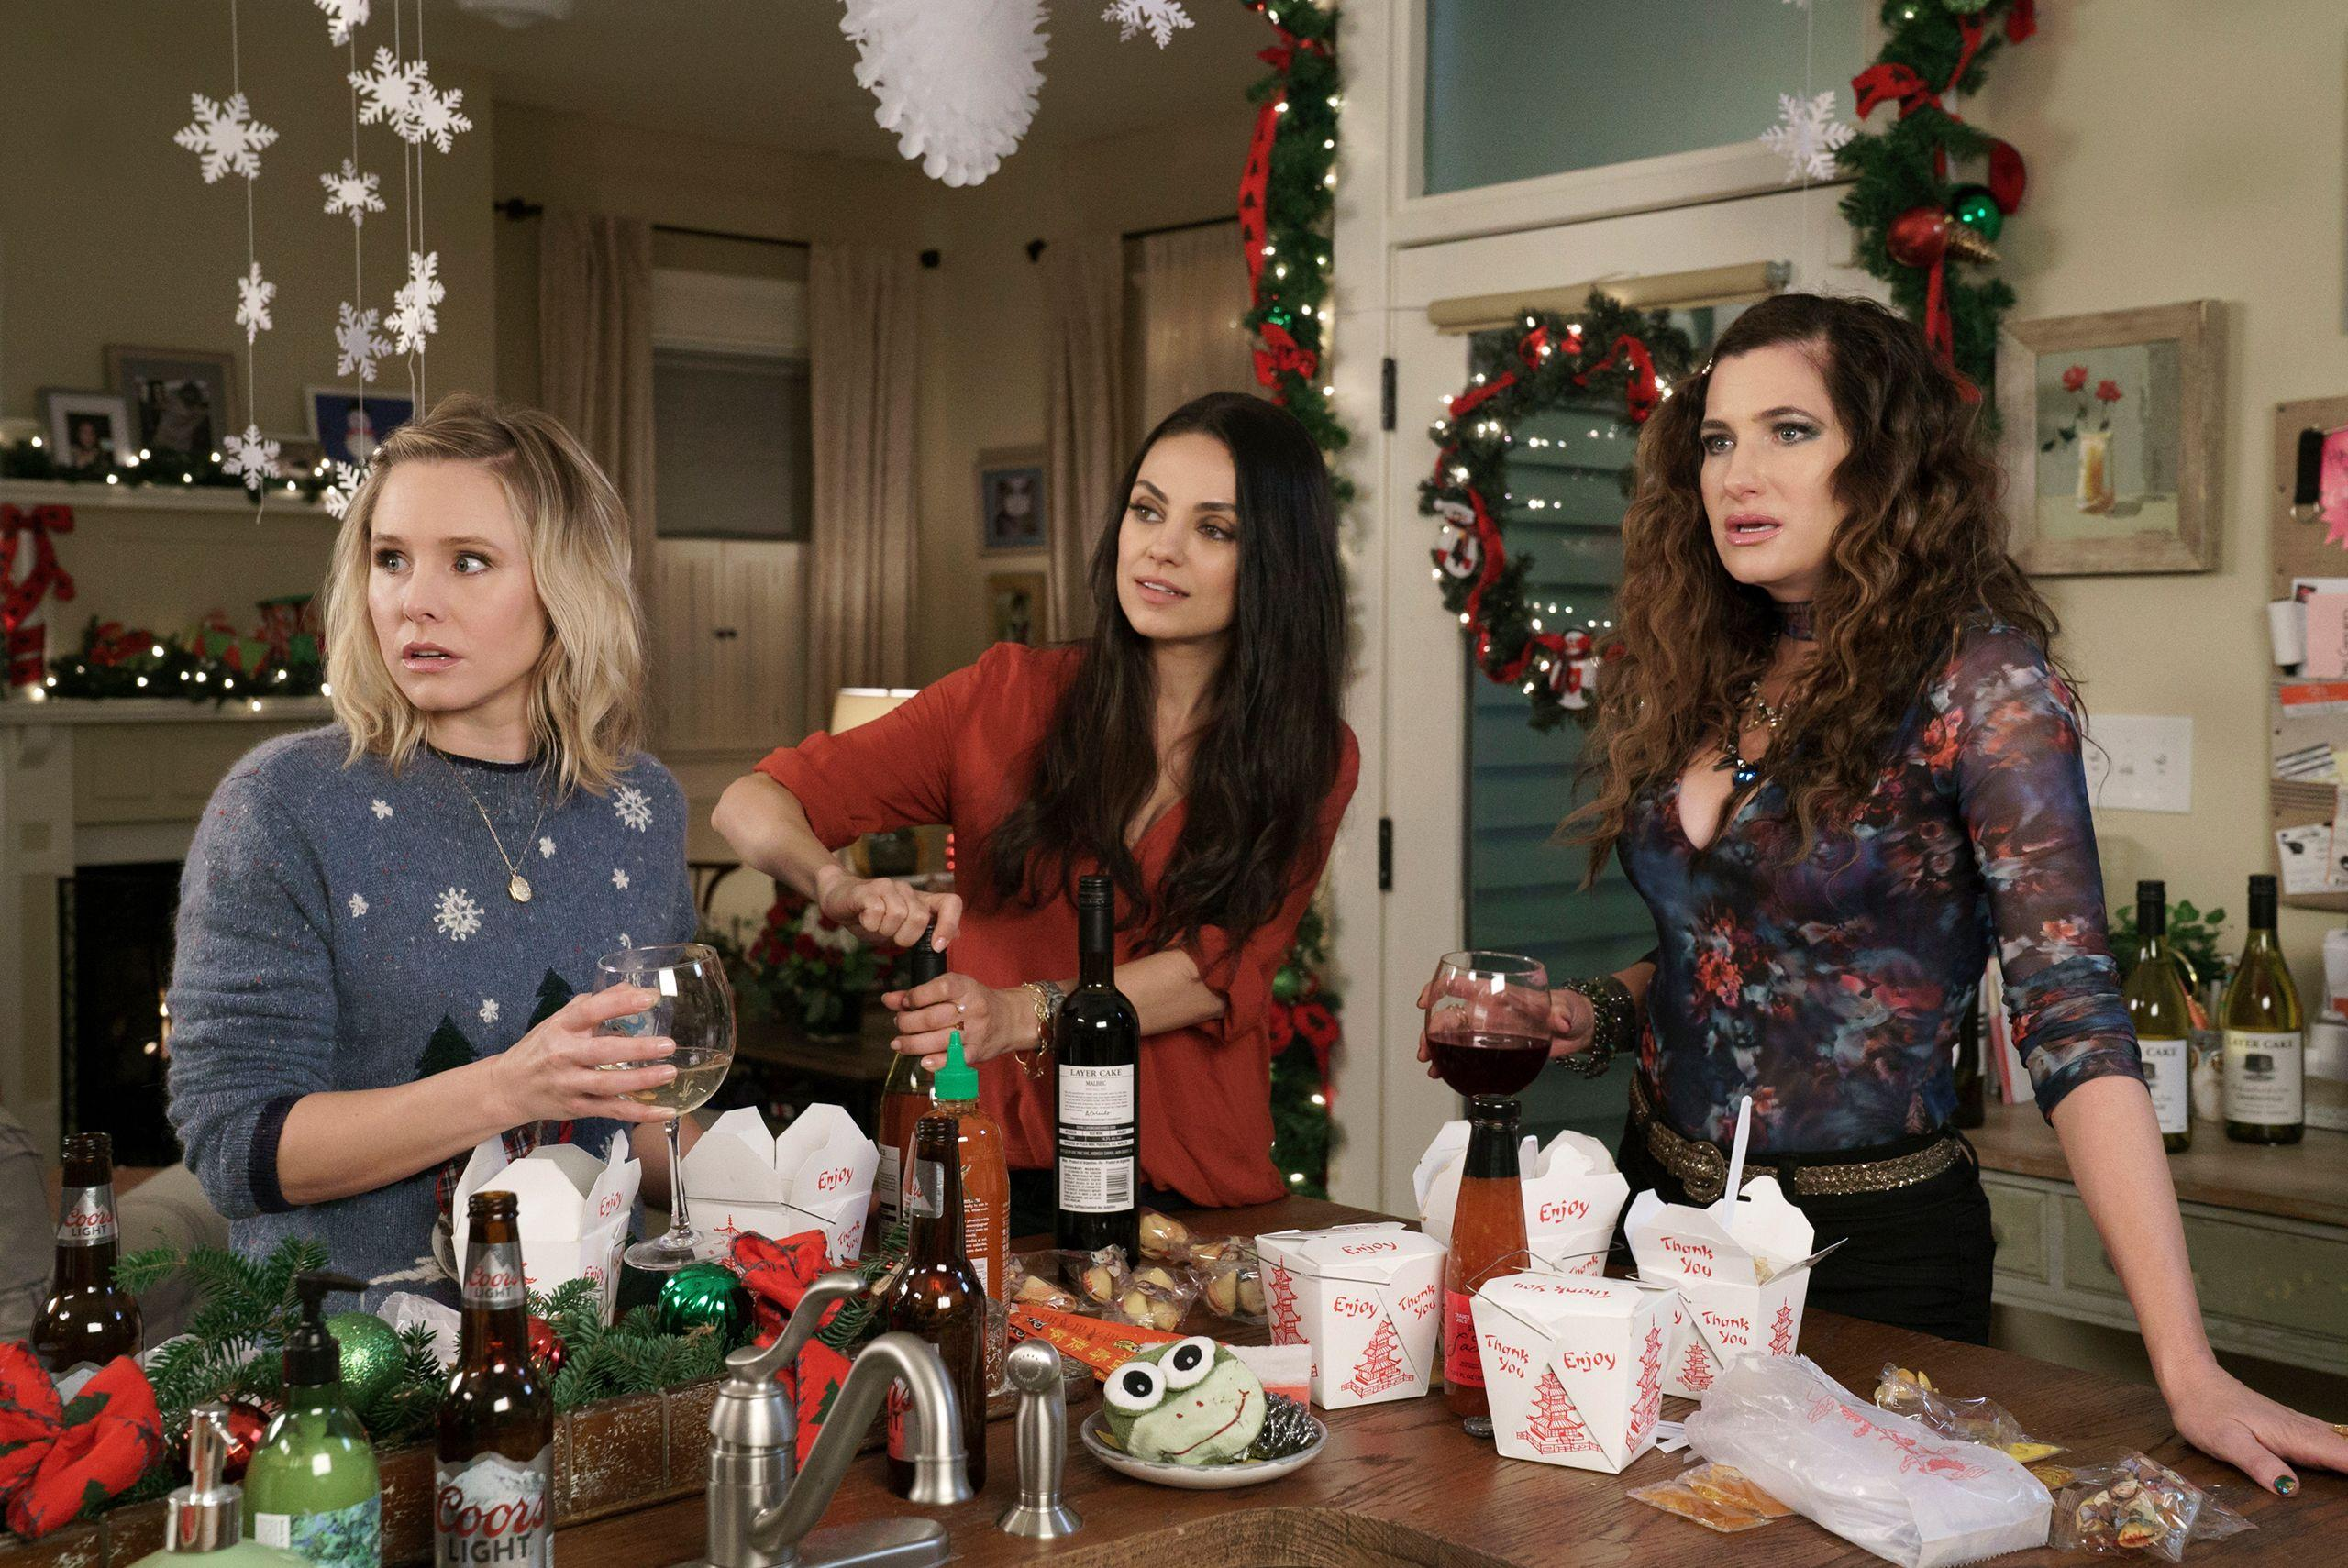 Netflix films with strong female leads: A Bad Moms Christmas